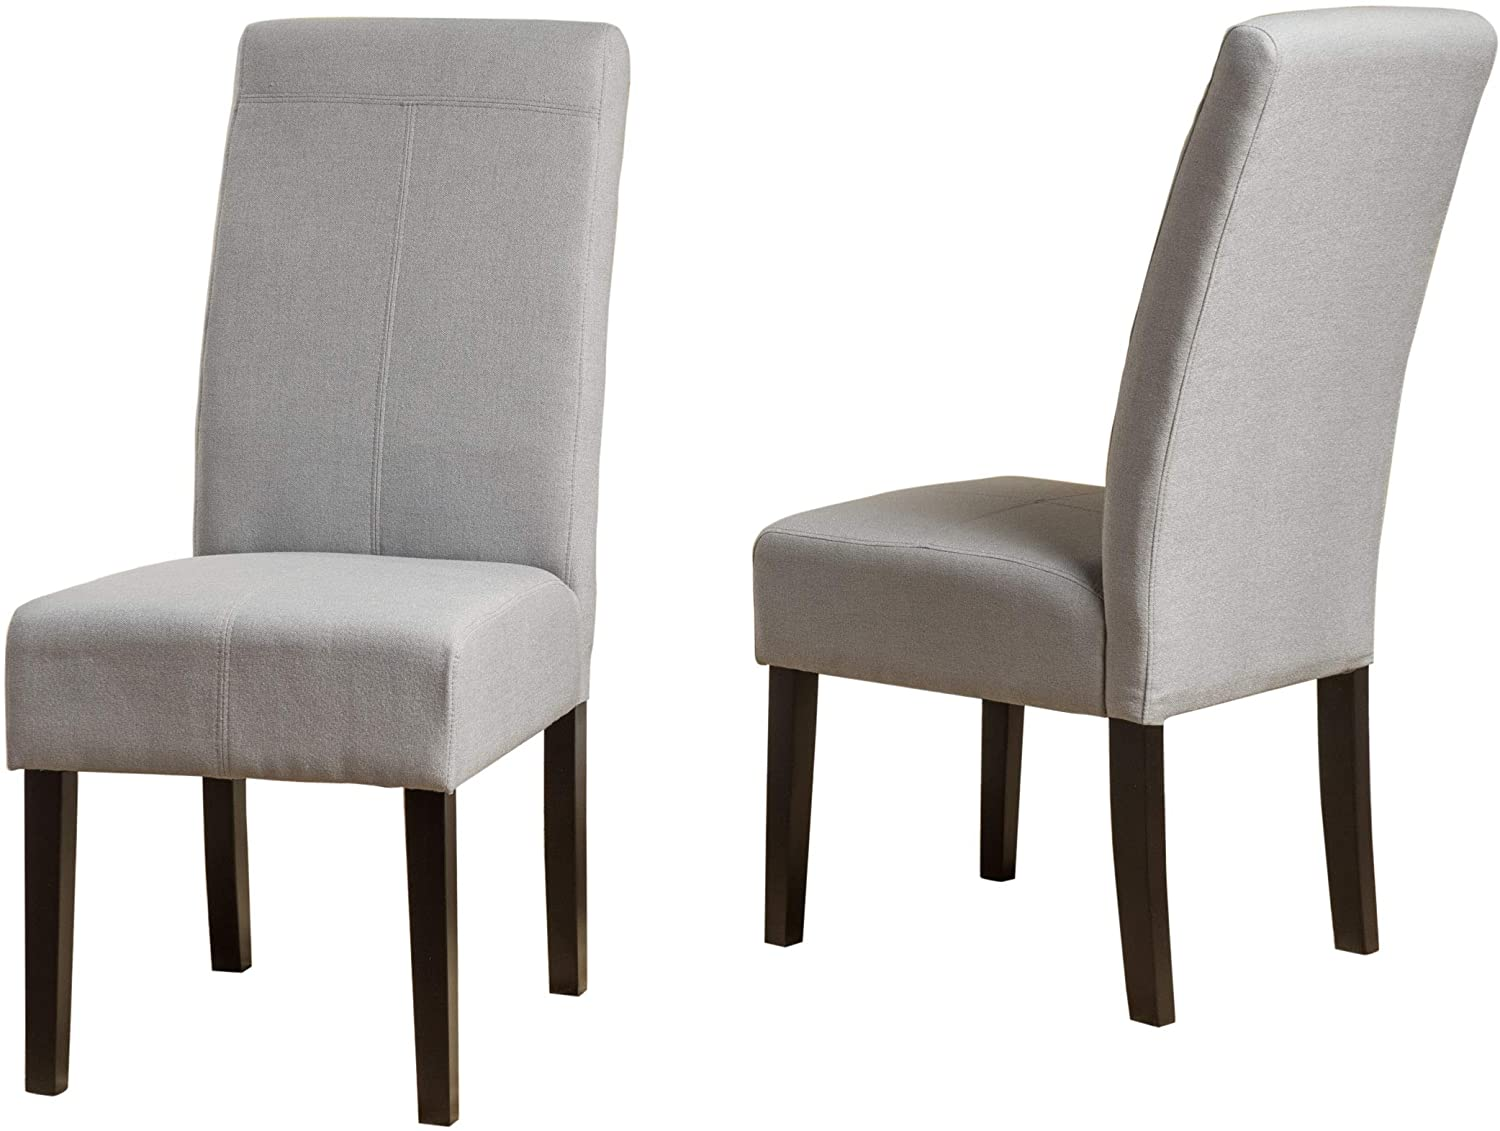 Christopher Knight Home Pertica Fabric Dining Chairs, 2-Pcs Set, Light Grey